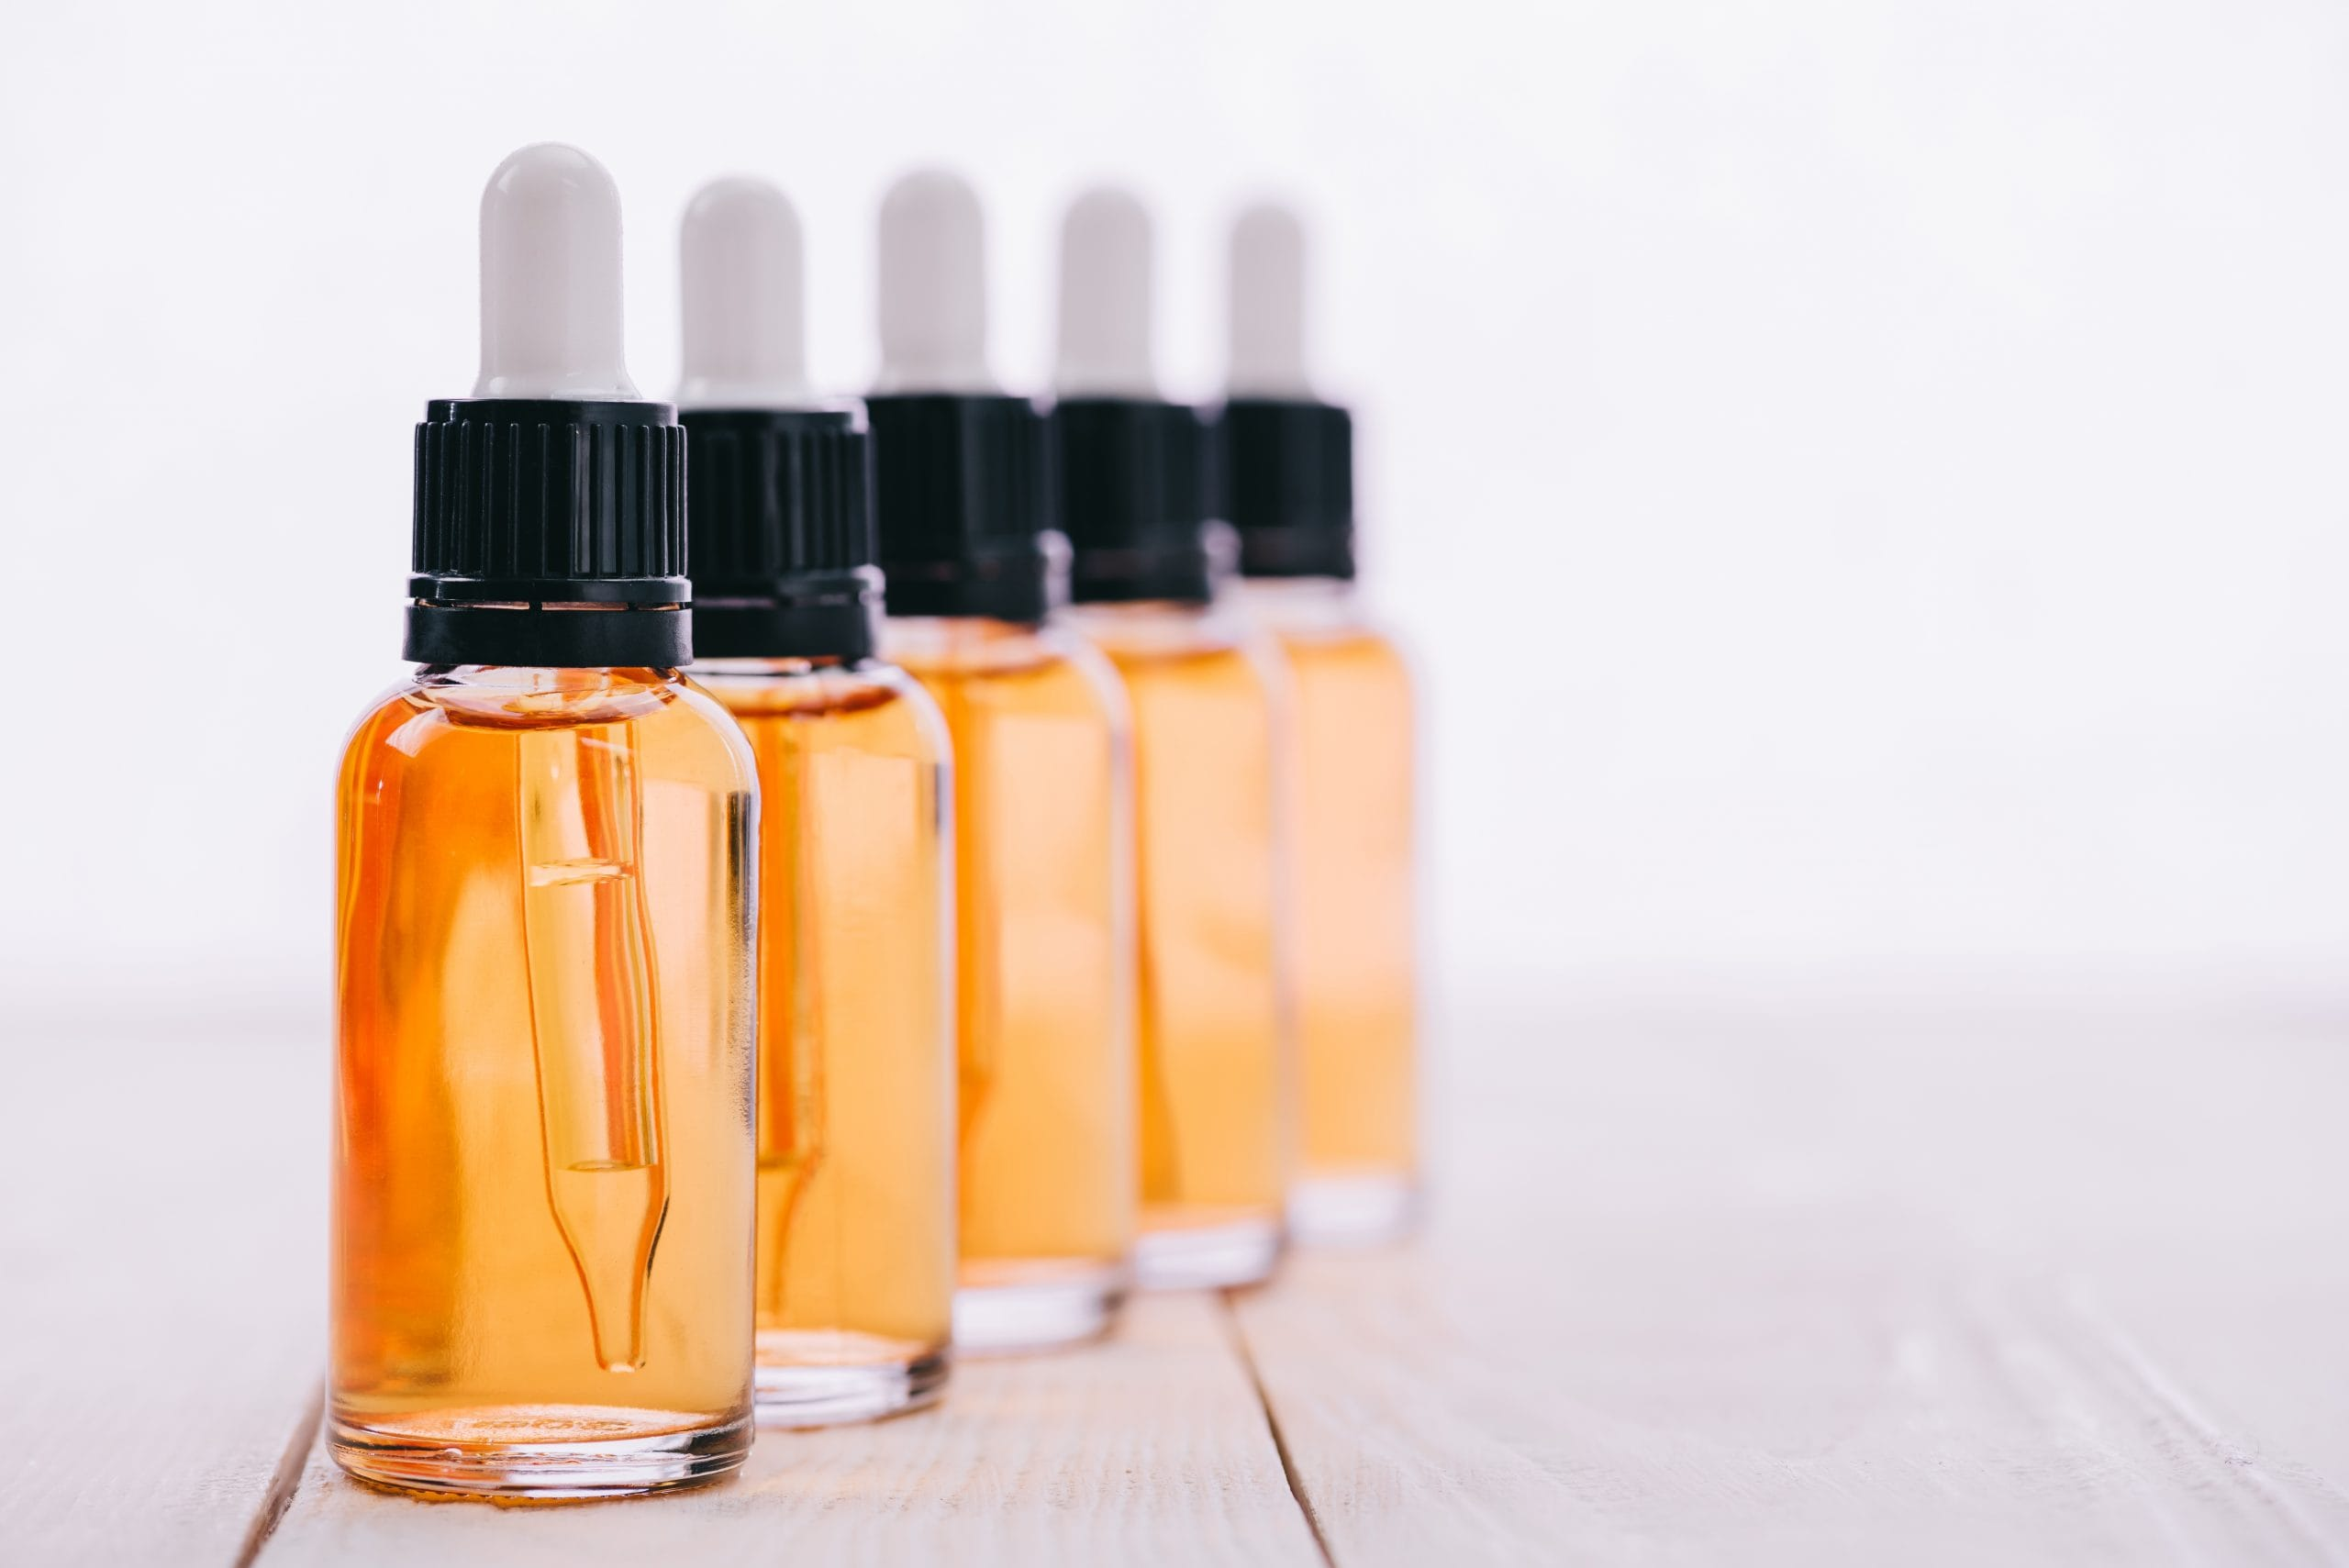 Clint Eastwood: A row of glass bottles with yellow CBD oil them